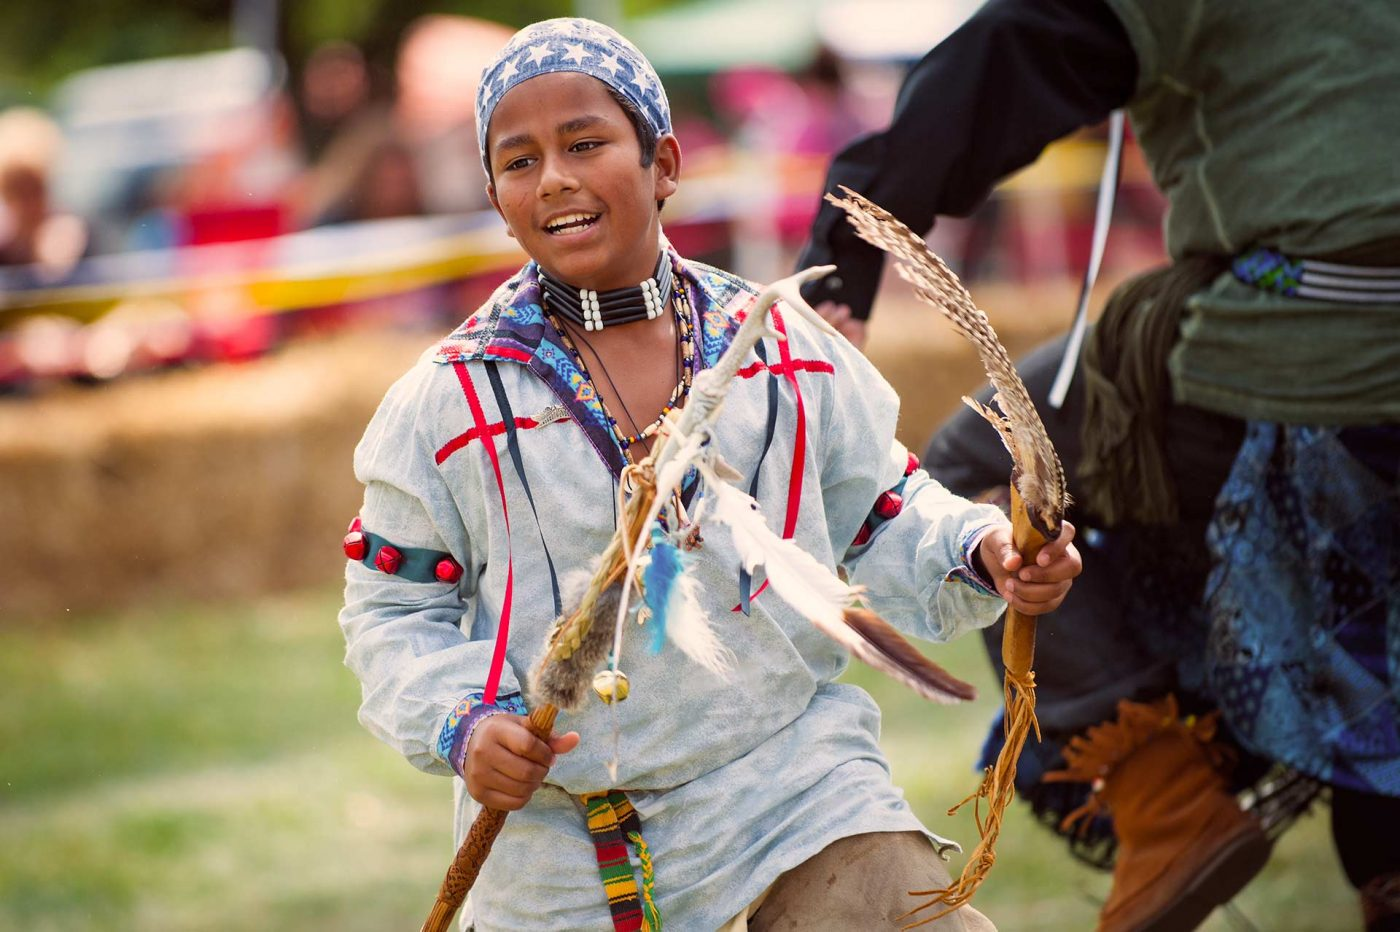 Boy dancing in the circle at the 2016 Muddy Run Pow-Wow at Muddy run Park in Holtwood Pennsylvania.